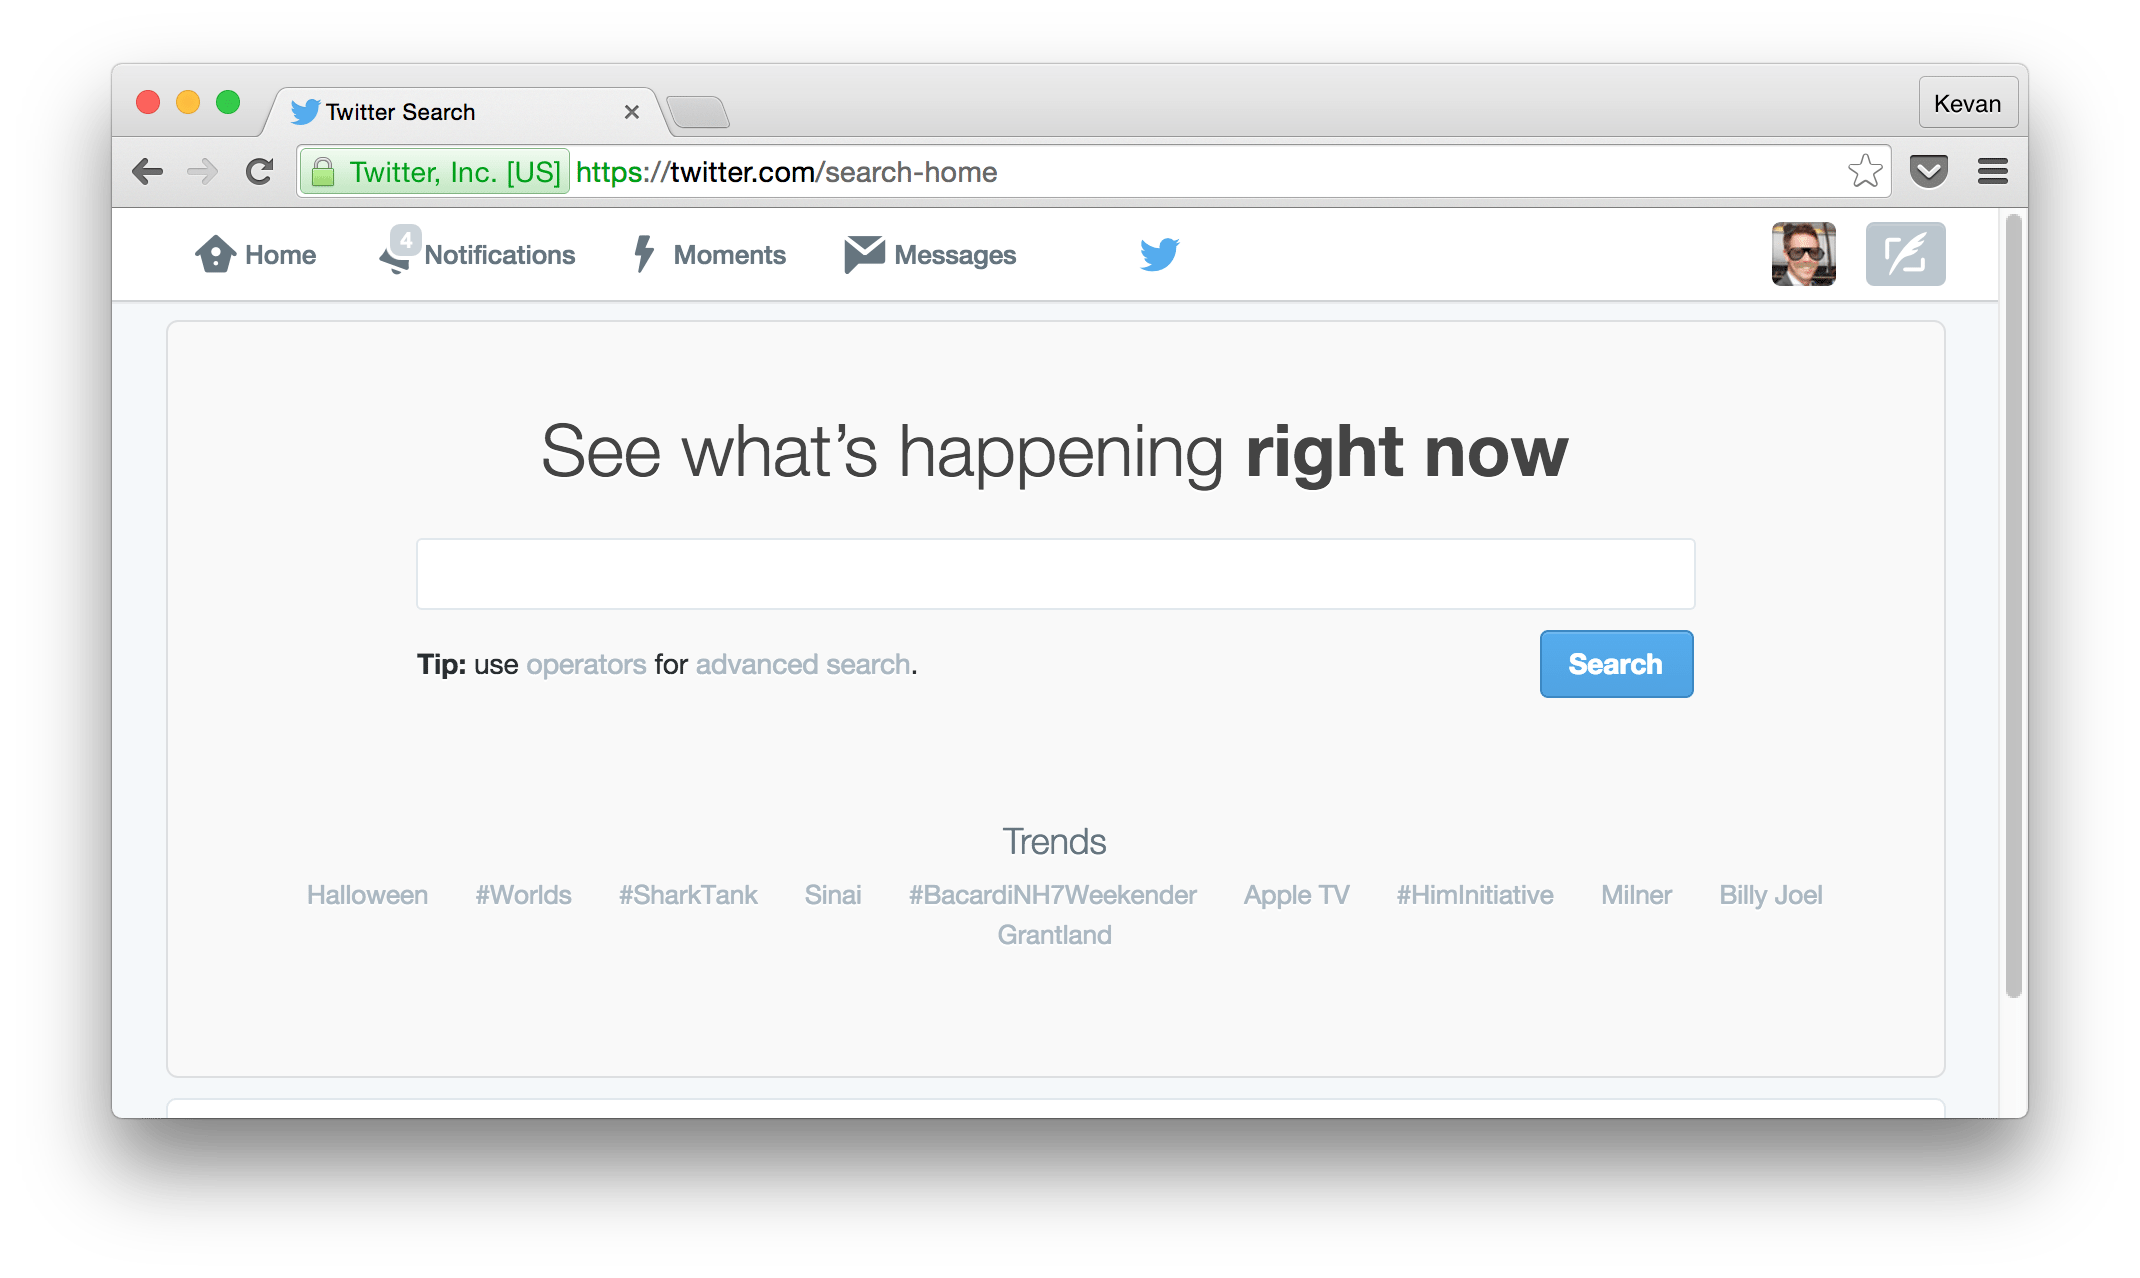 Twitter search web page